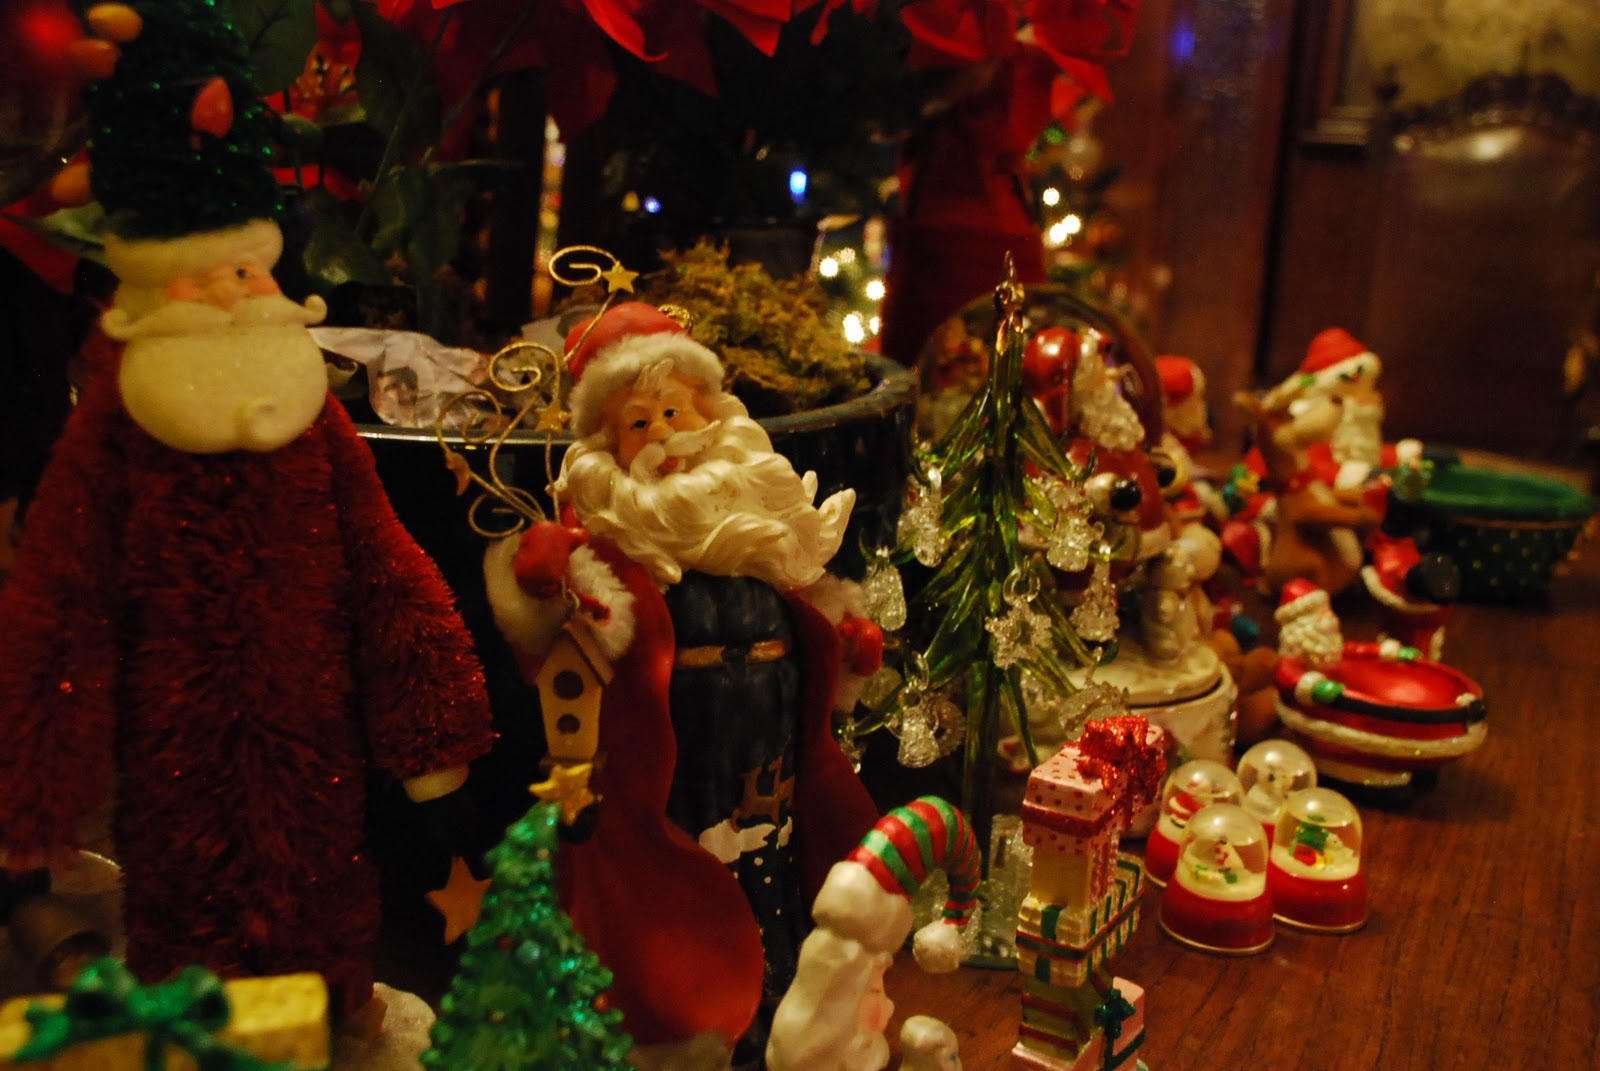 Greenhills Christmas Decor : Stories behind some of the christmas decorations this